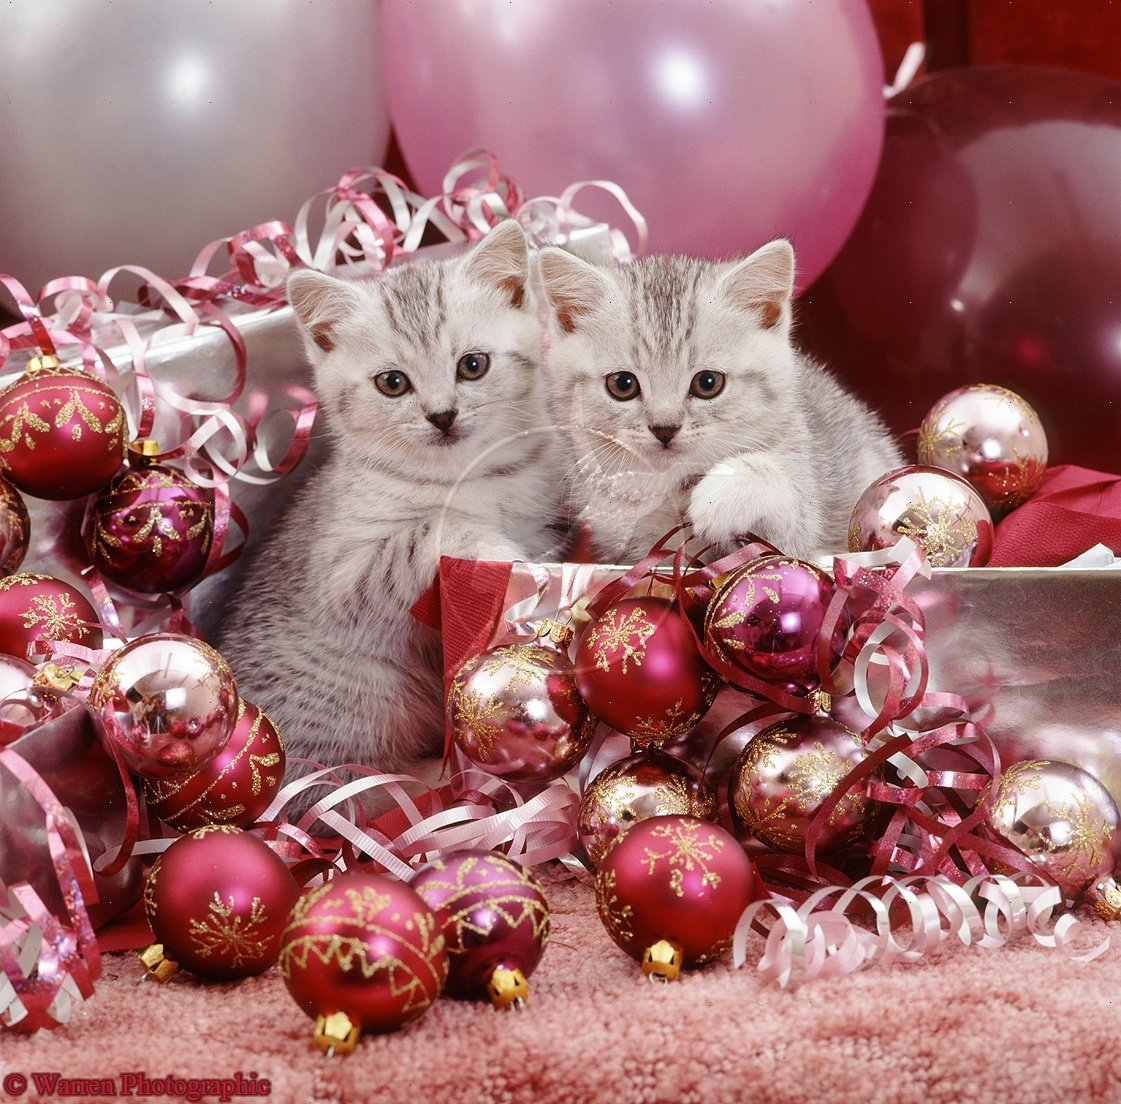 12 days of christmas kittens